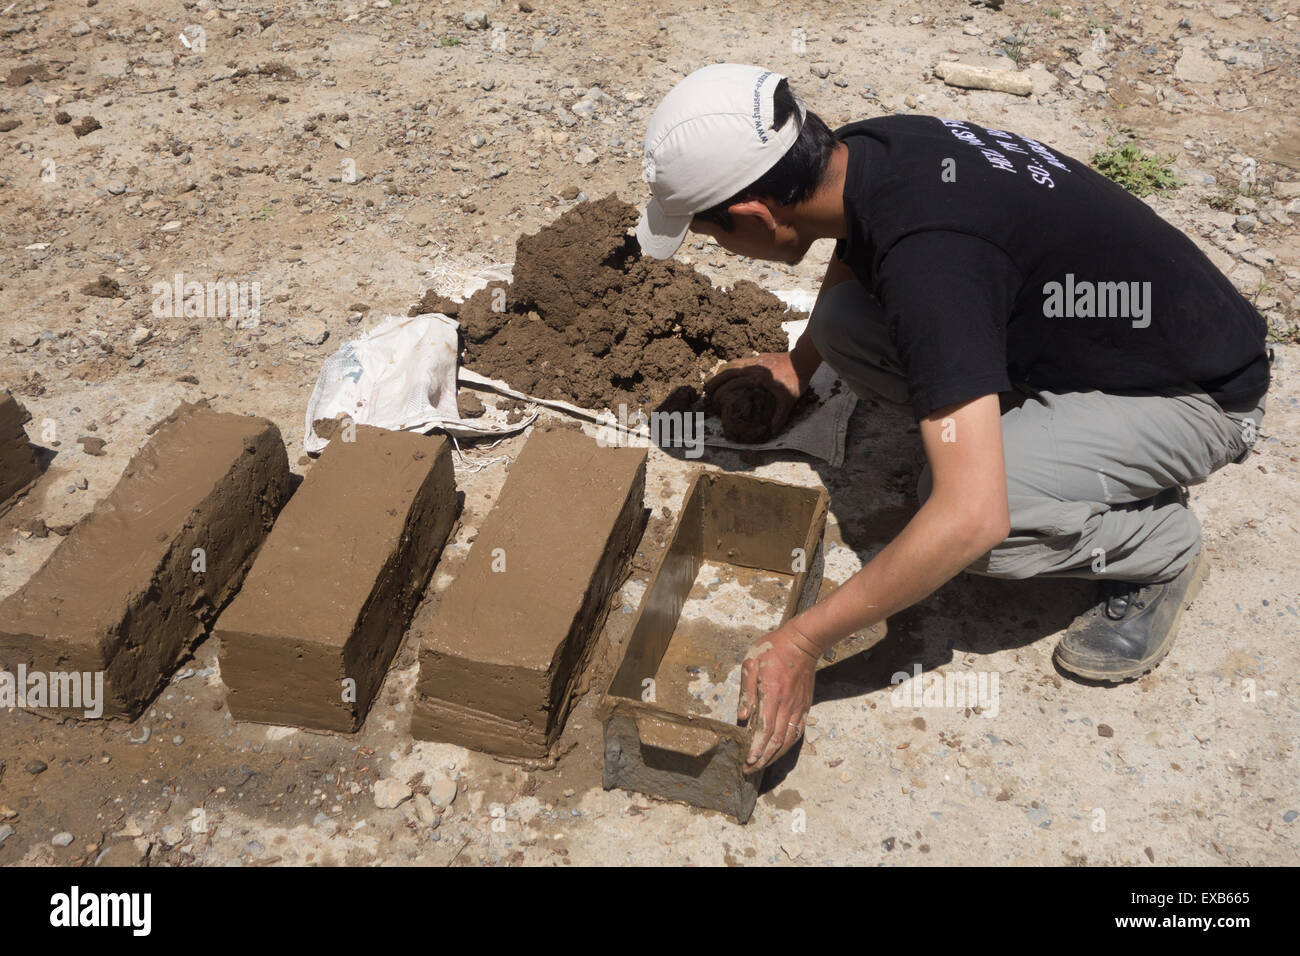 A worker making sustainable mud bricks to construct a greenhouse to grow food all year round - Himalayas - Stock Image